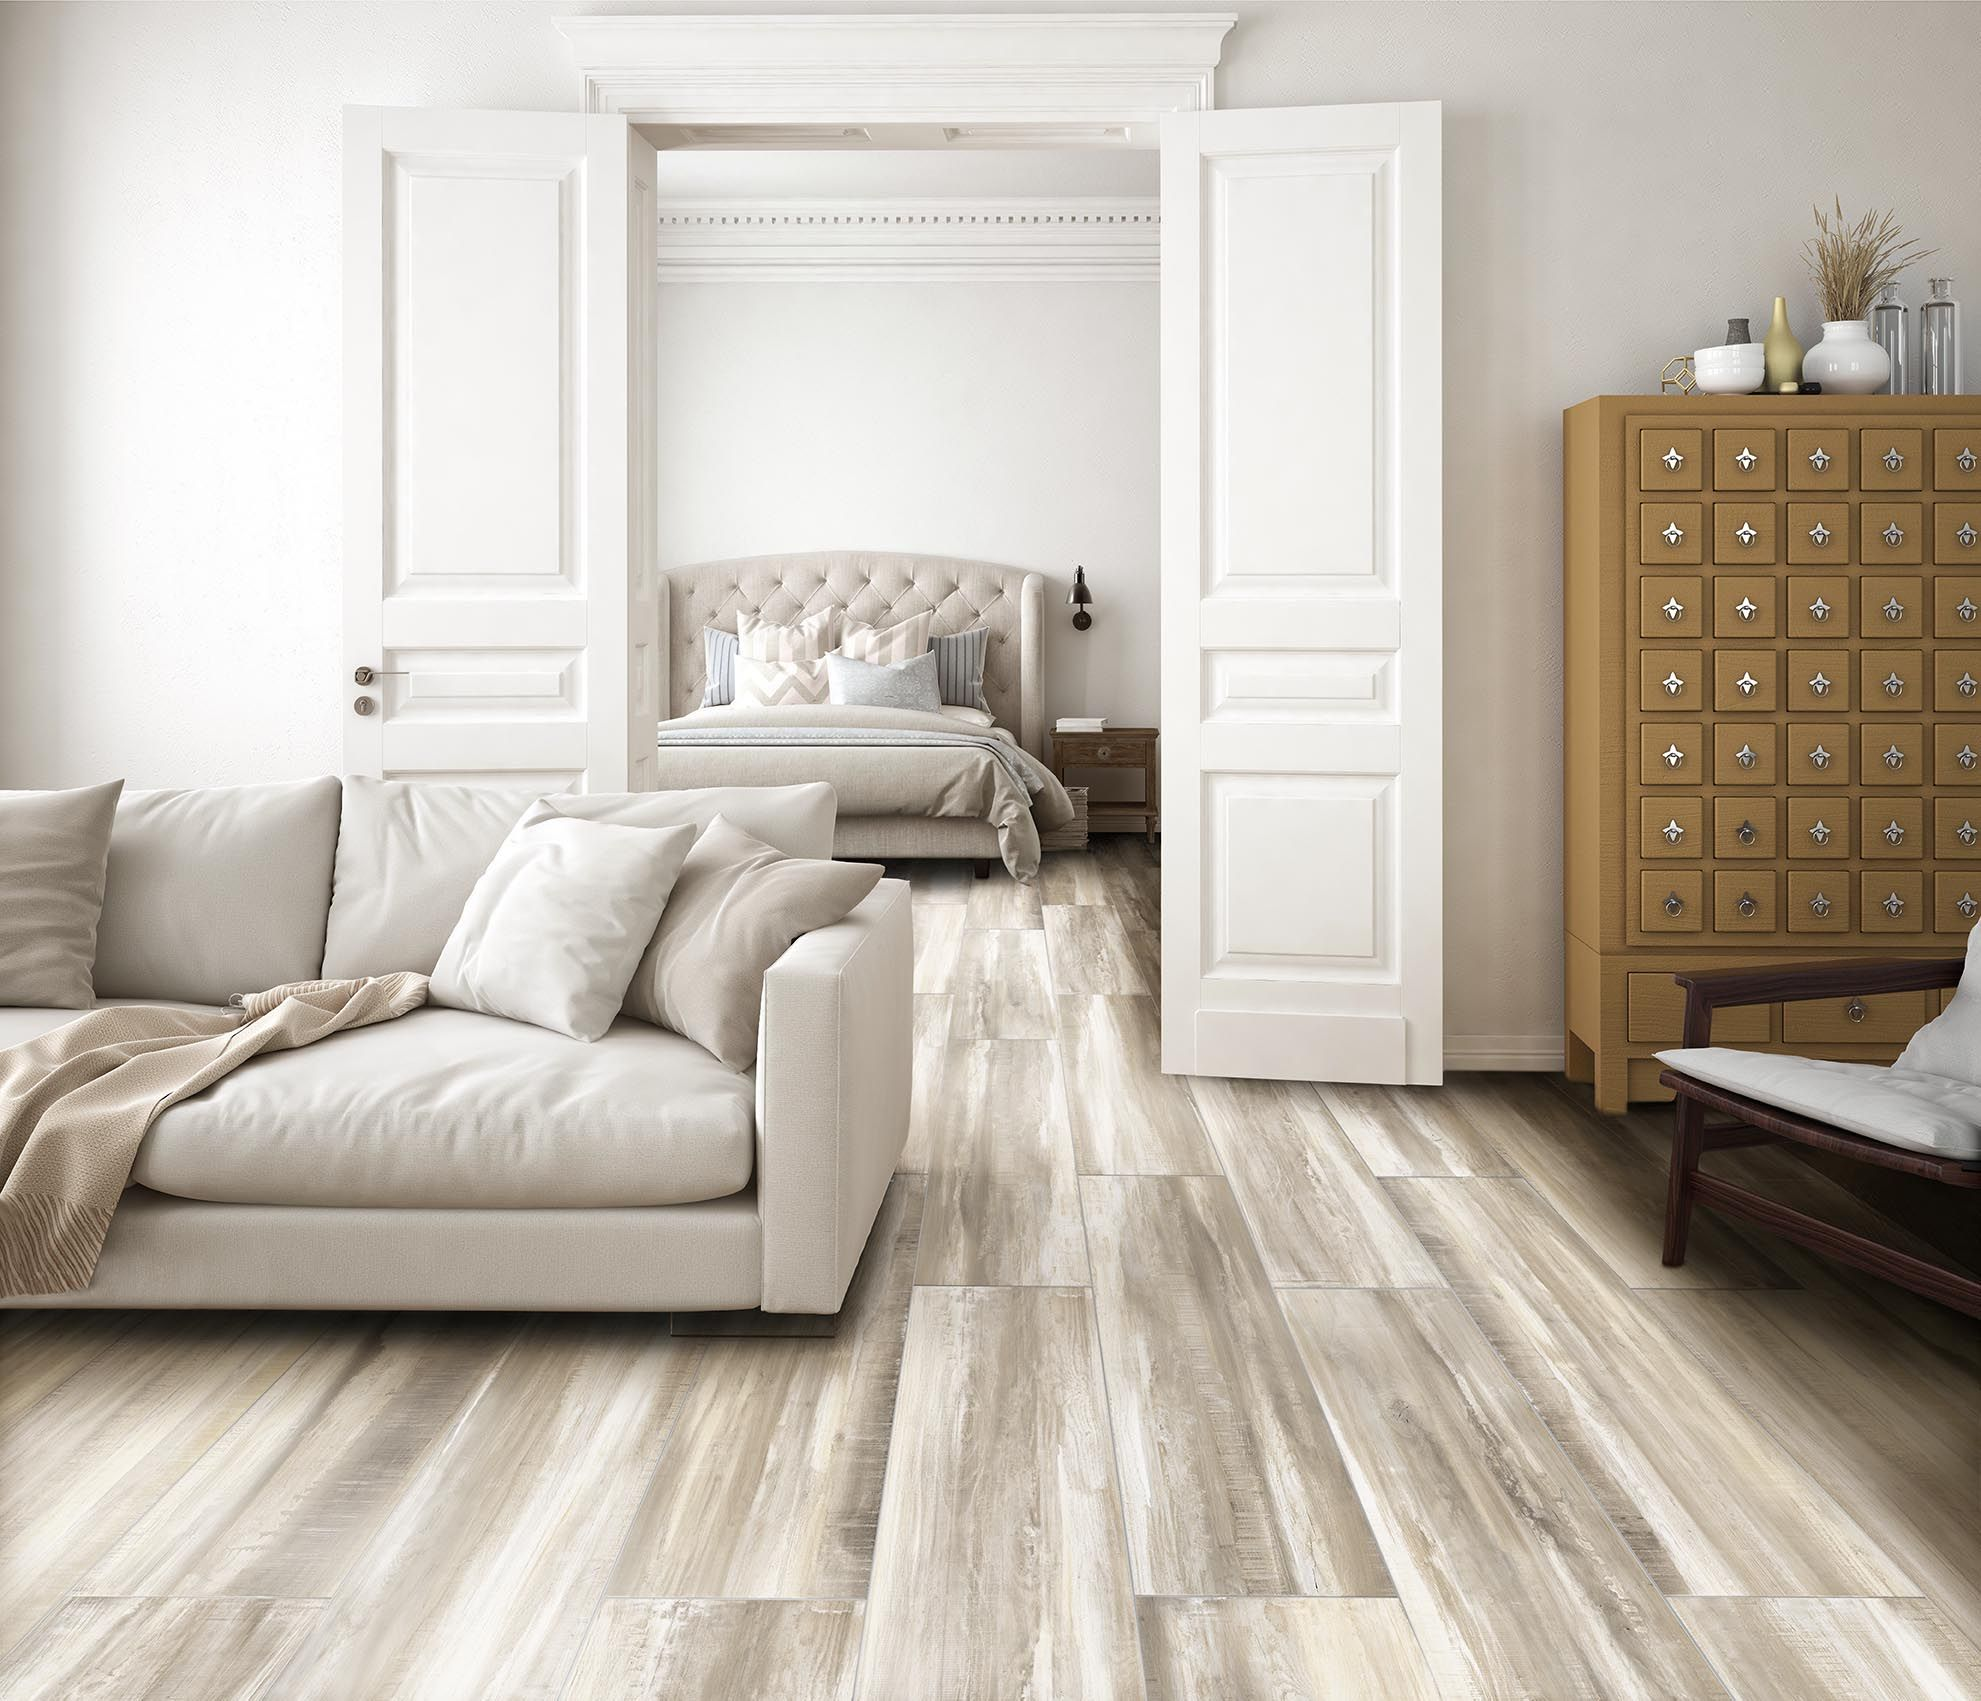 Pin On Amazing Wood Look Porcelain Tile